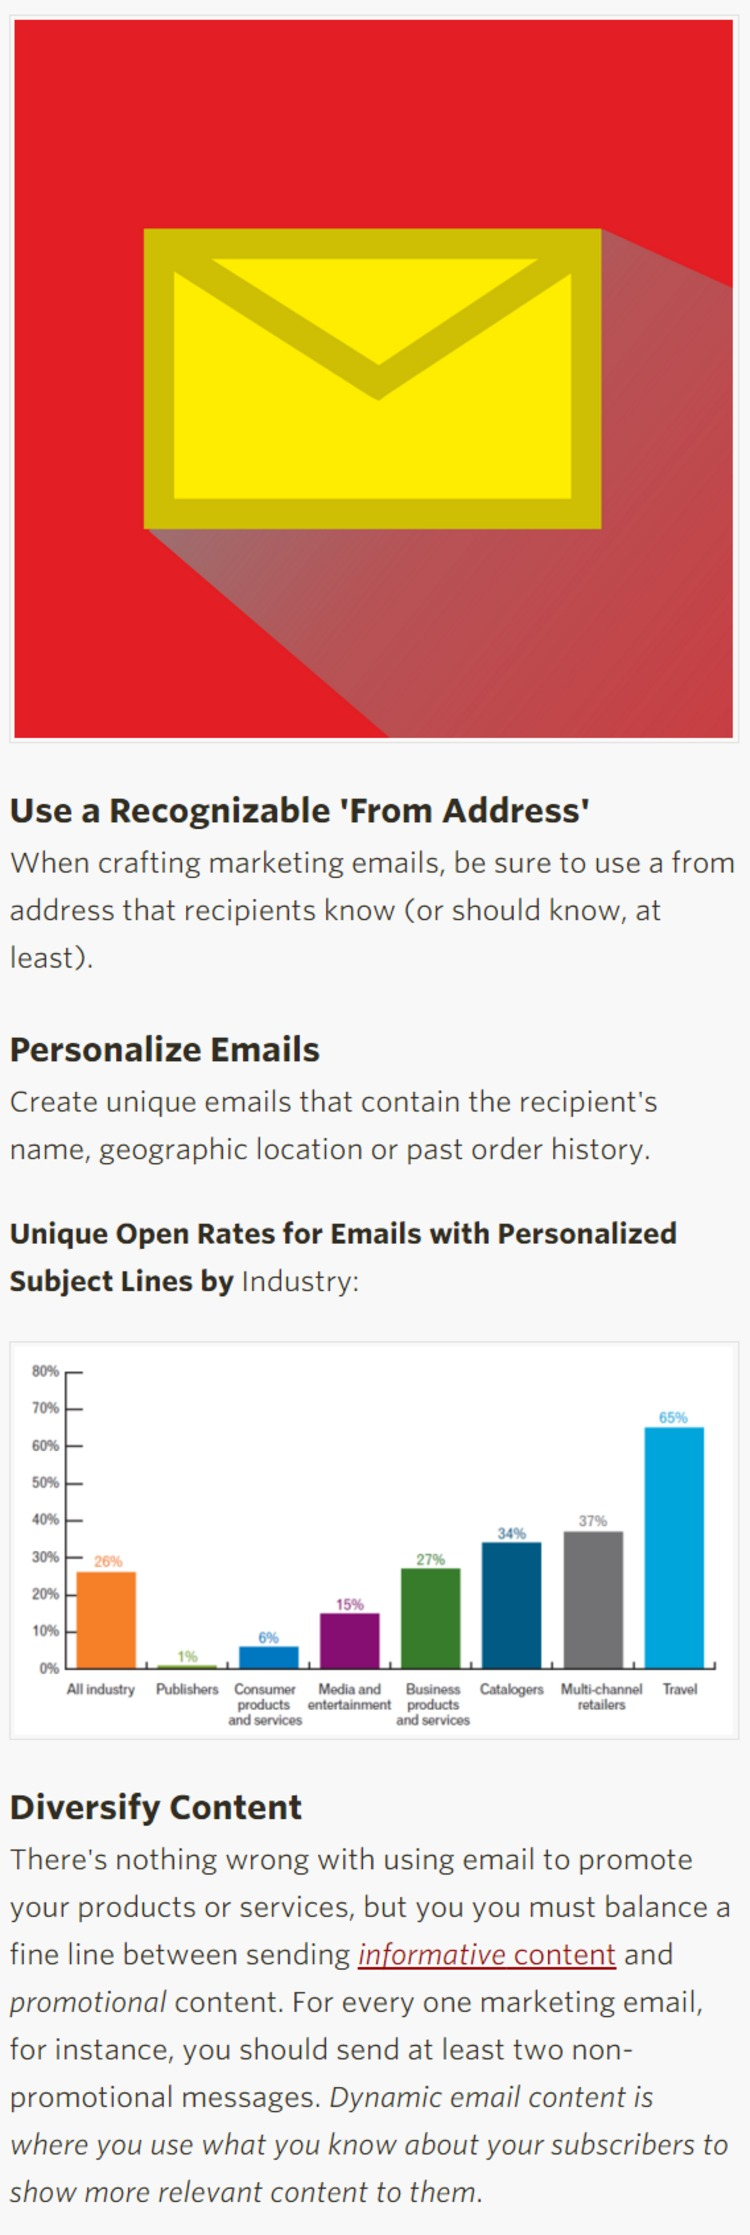 How to Improve Email Open Rates - Social Media Today | The Marketing Technology Alert | Scoop.it